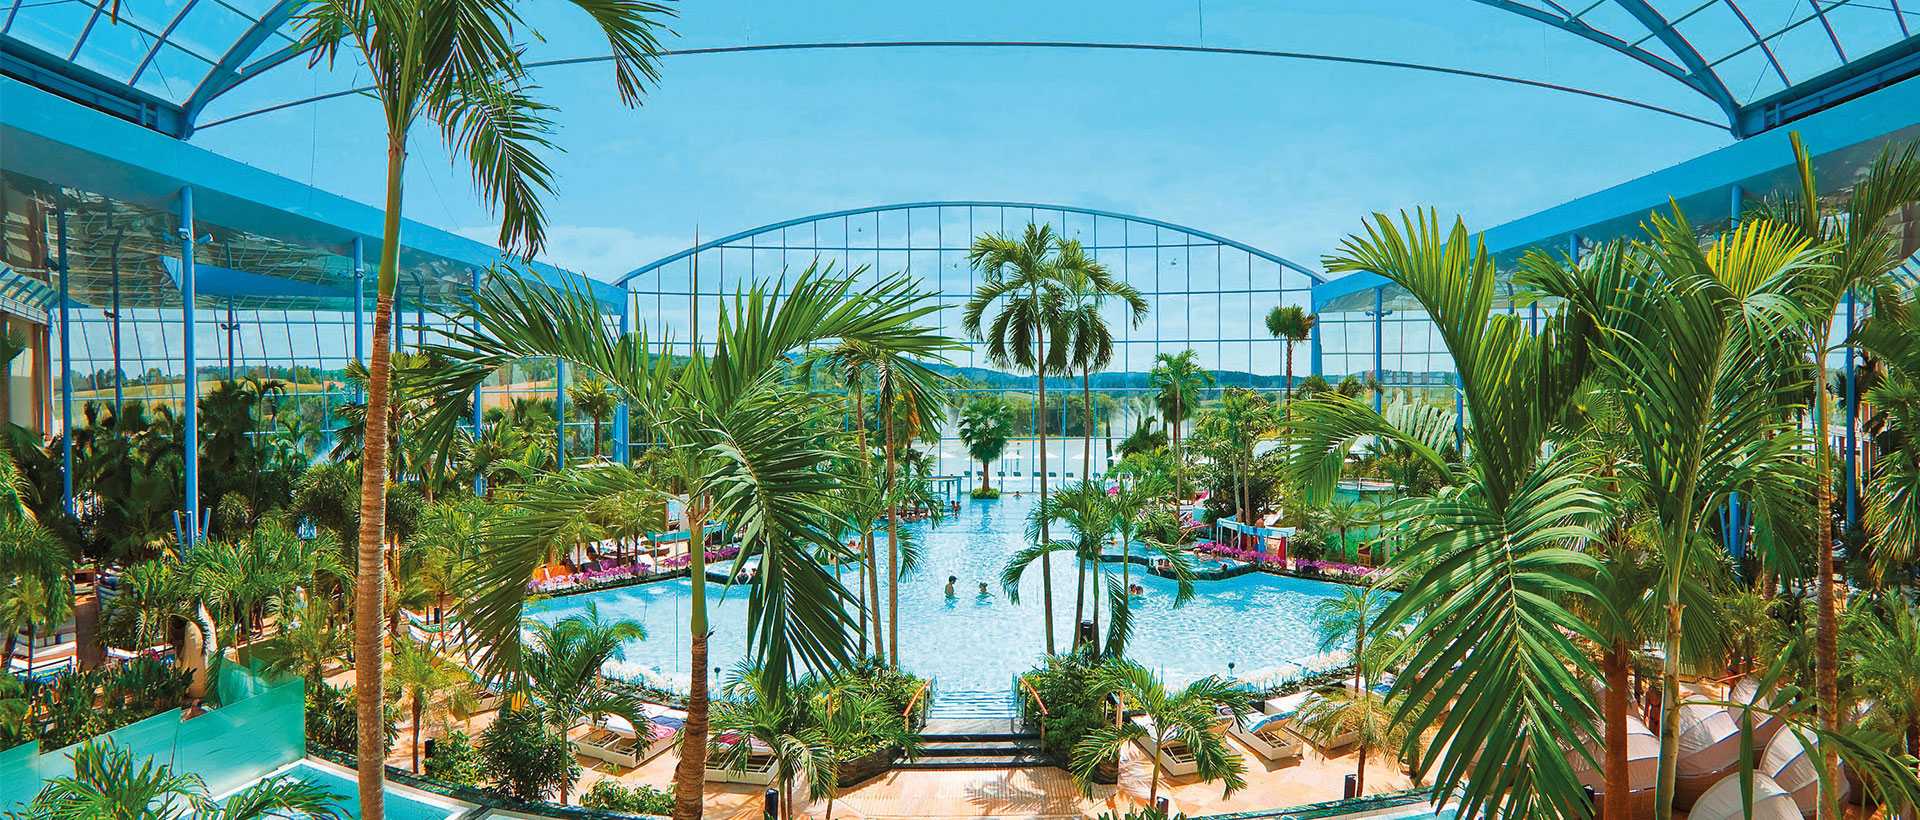 Therme Sinsheim